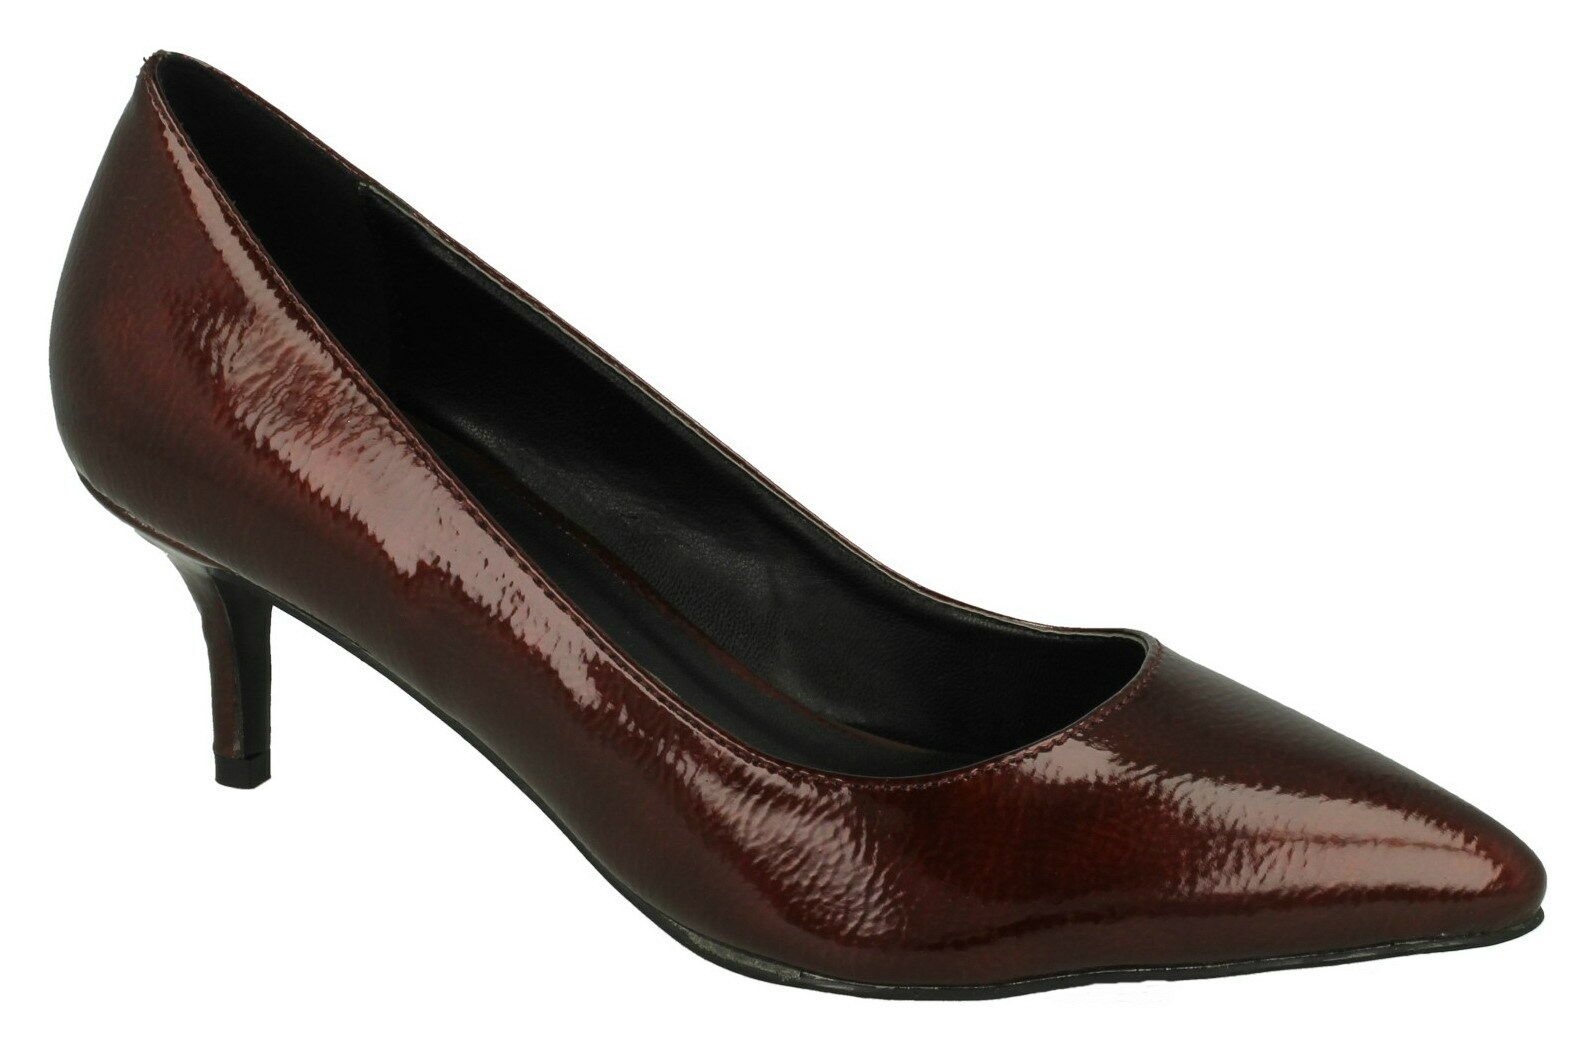 OFFERTA SPOT ON F9952 BORDEAUX da donna scarpe in pelle lucida eleganri